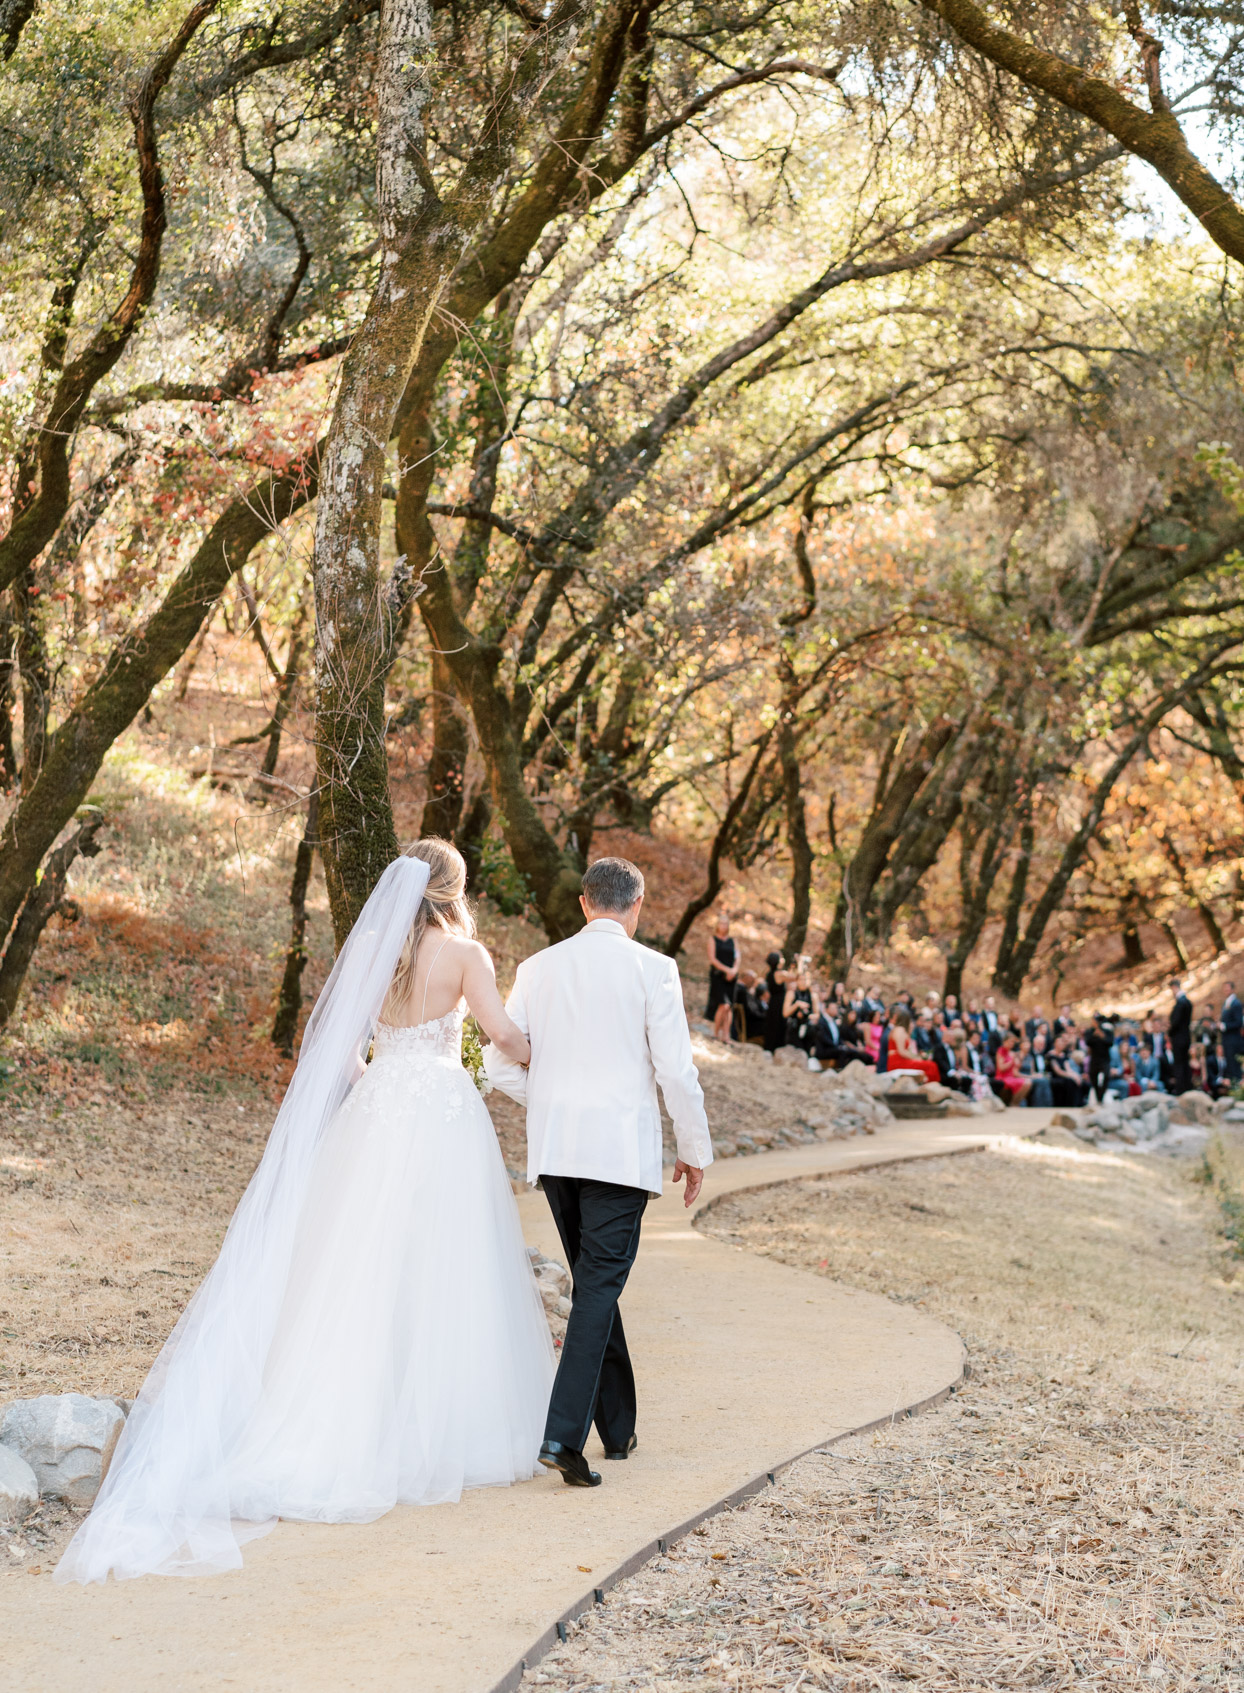 bride and father processing down winding path at wedding ceremony